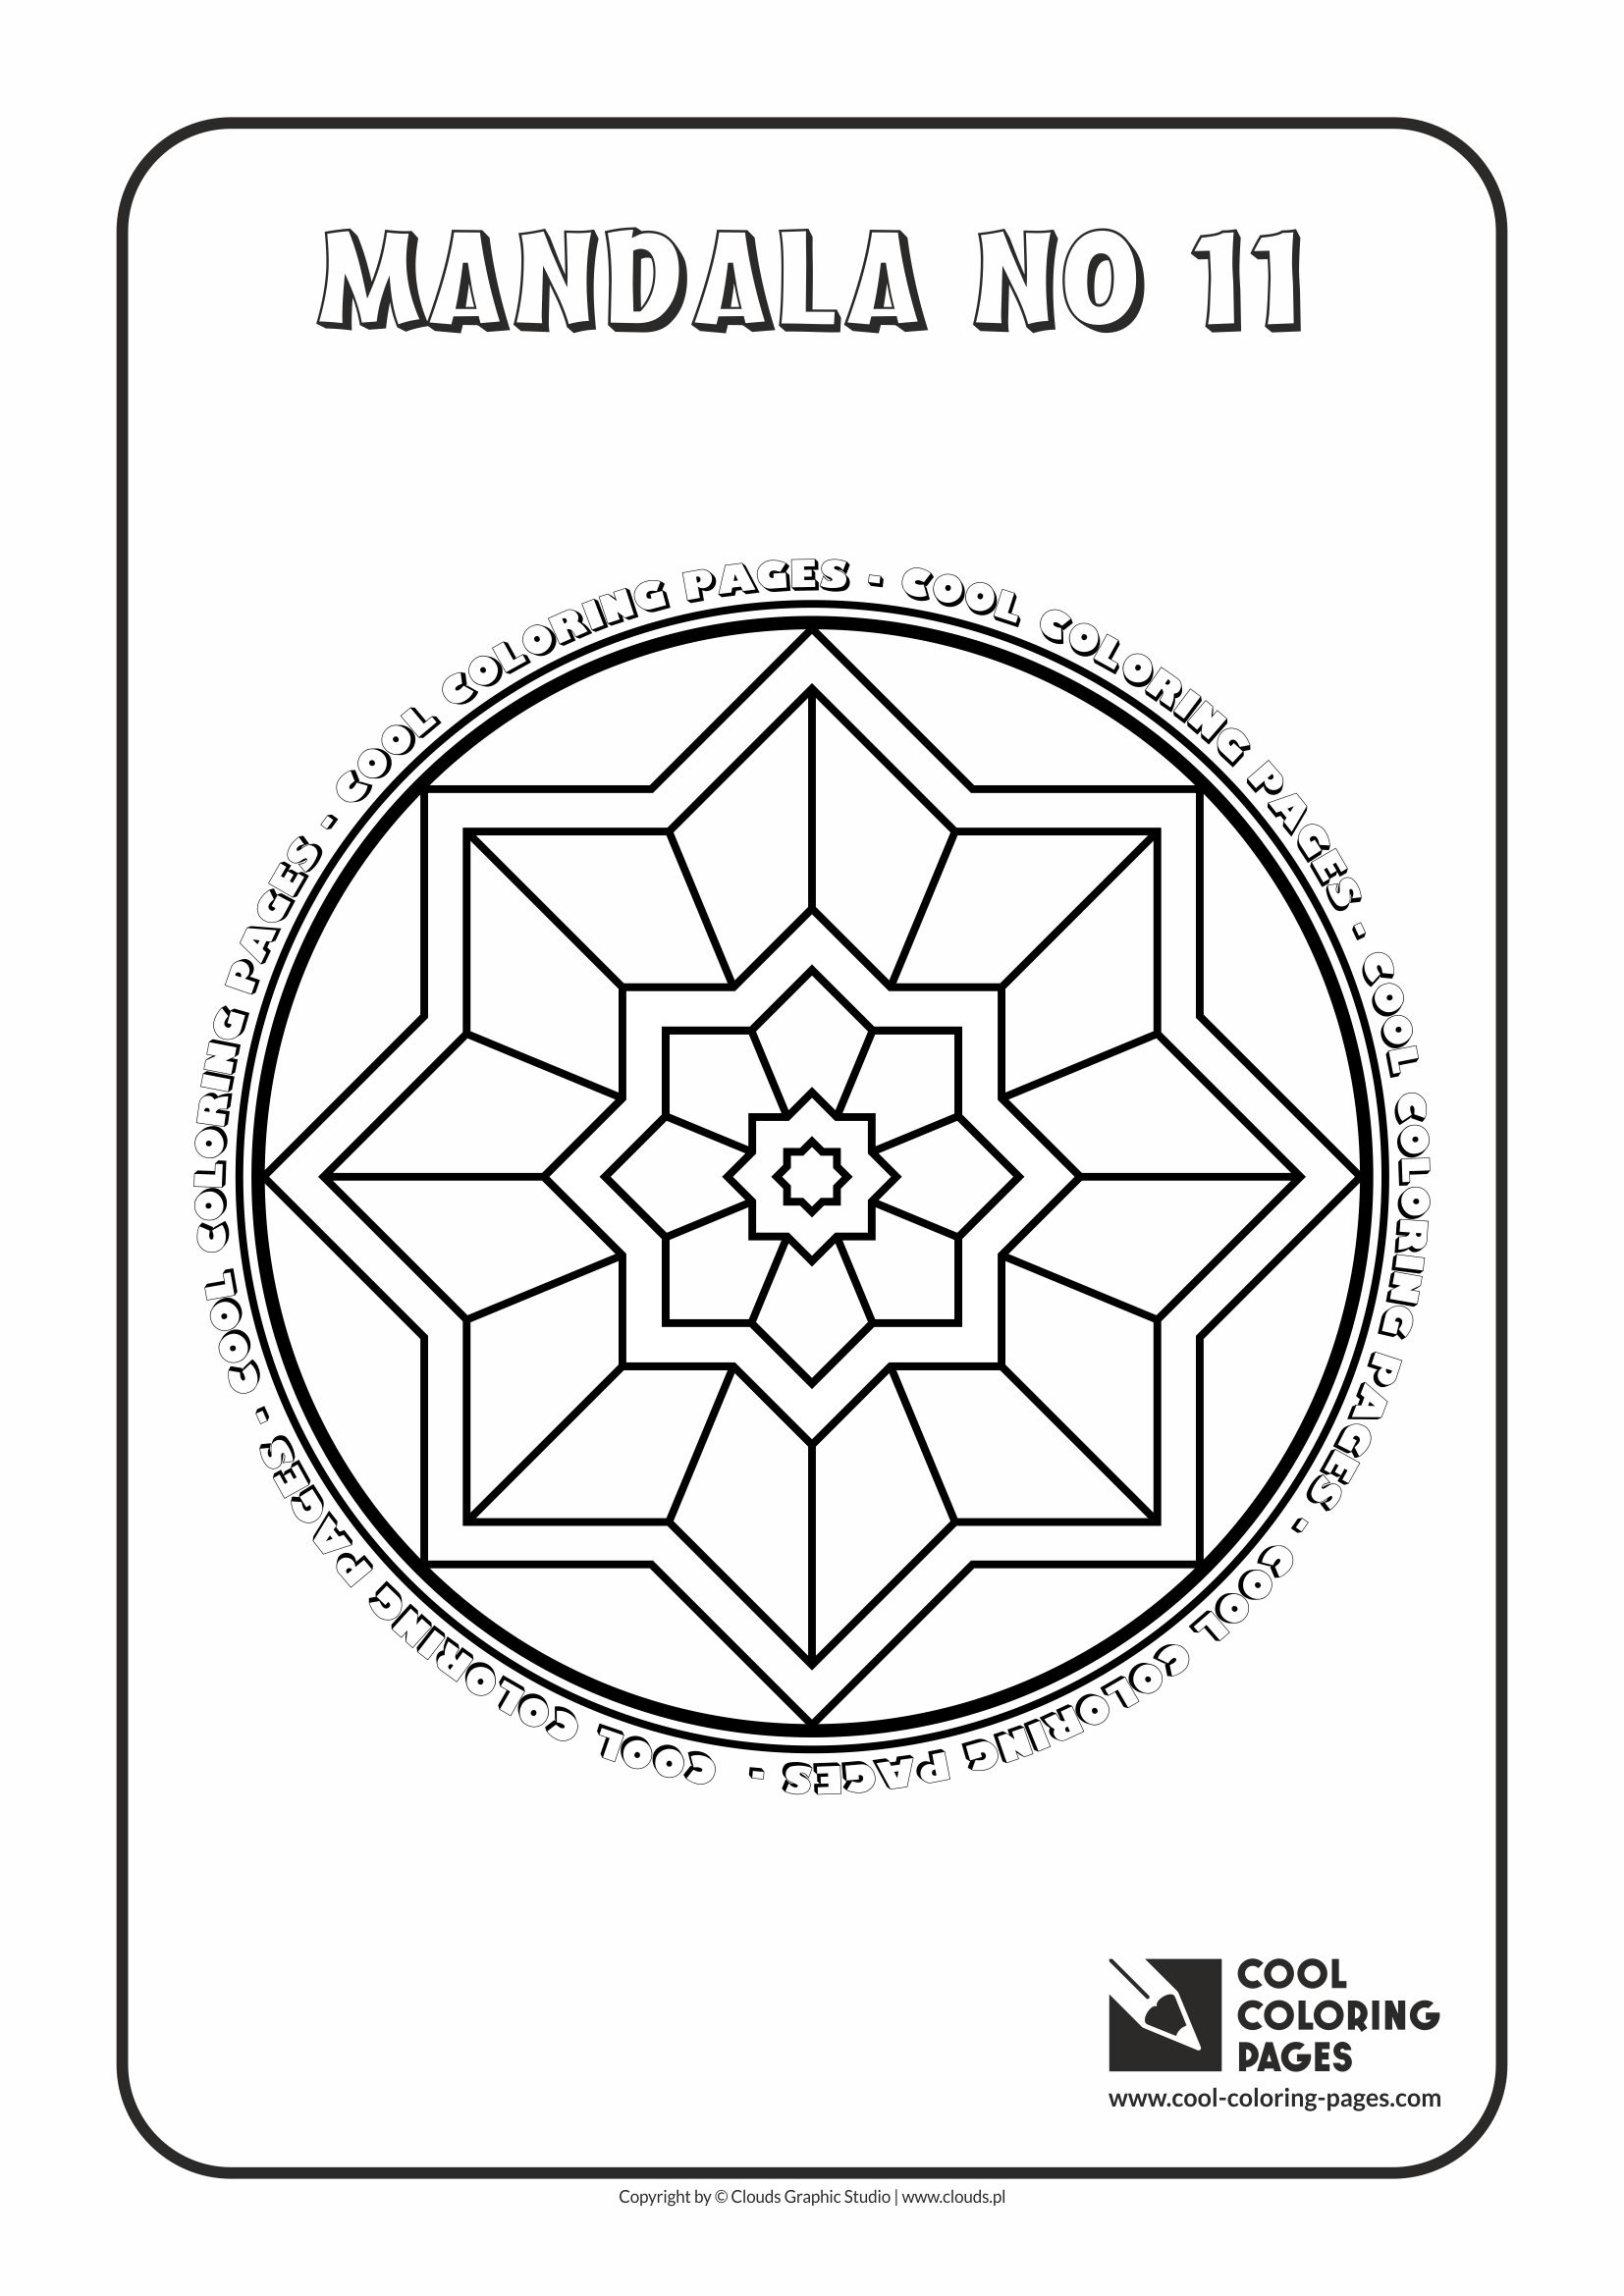 Cool Coloring Pages - Mandalas / Mandala no 11